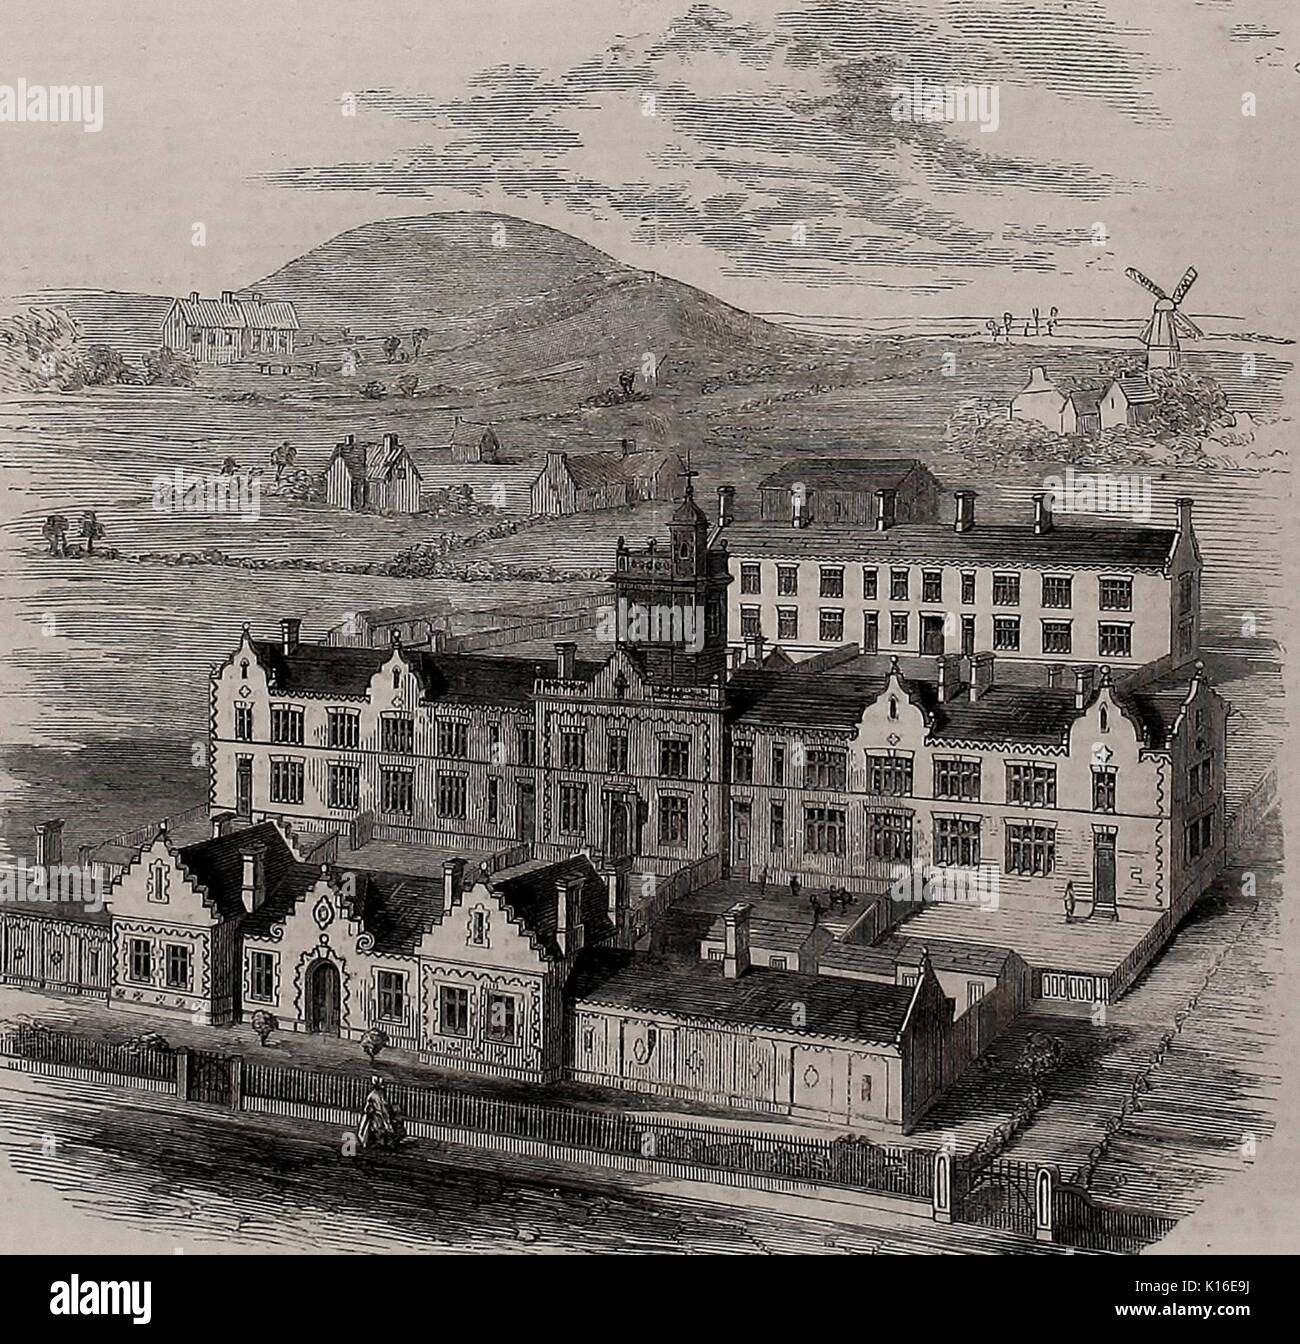 Birdseye view of Scarborough New Workhouse, 1859 - Stock Image